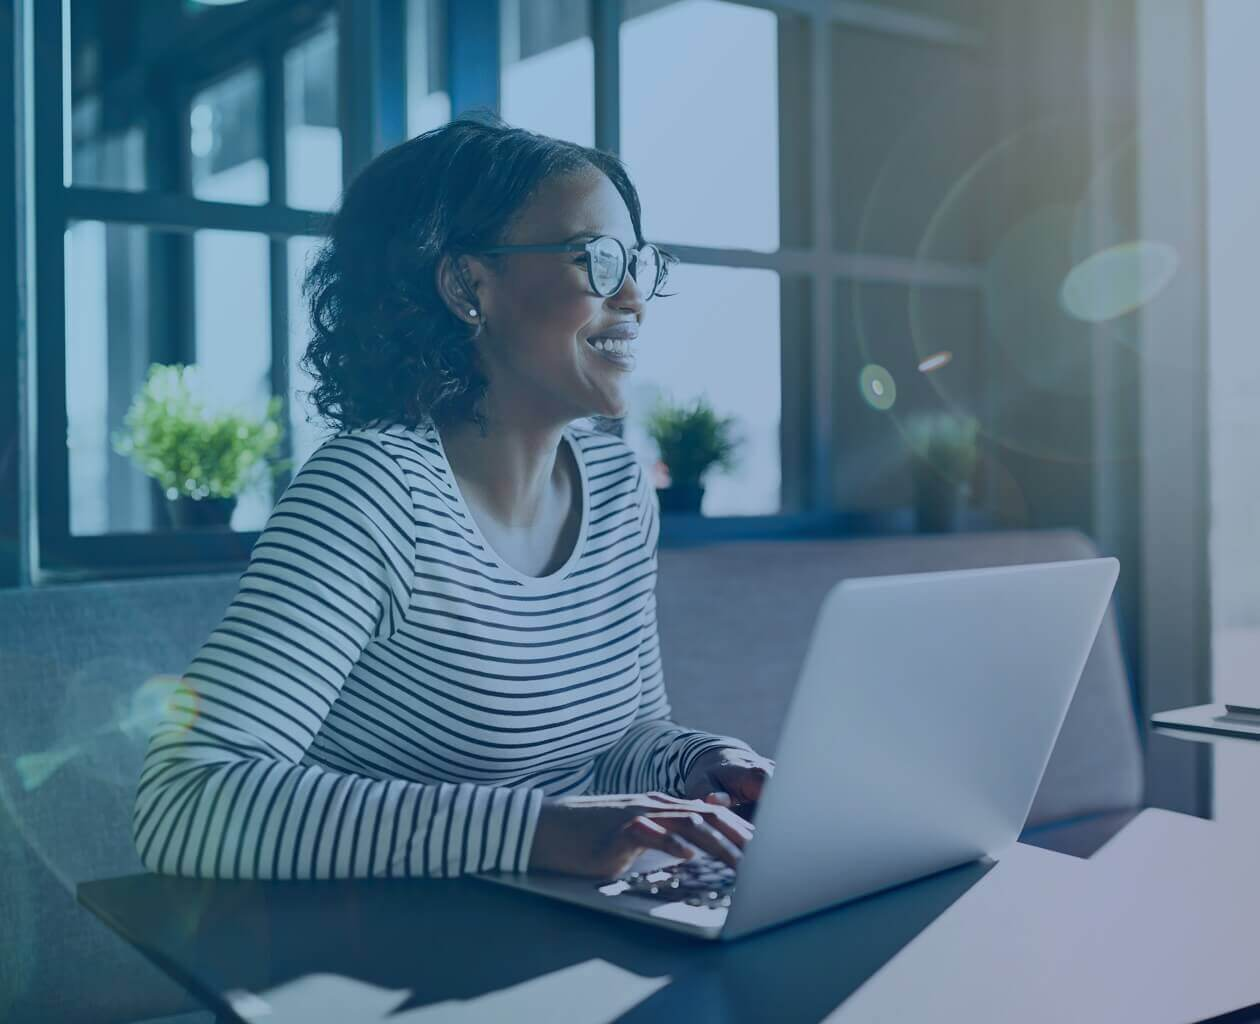 A black woman in glasses at her computer screen smiling.